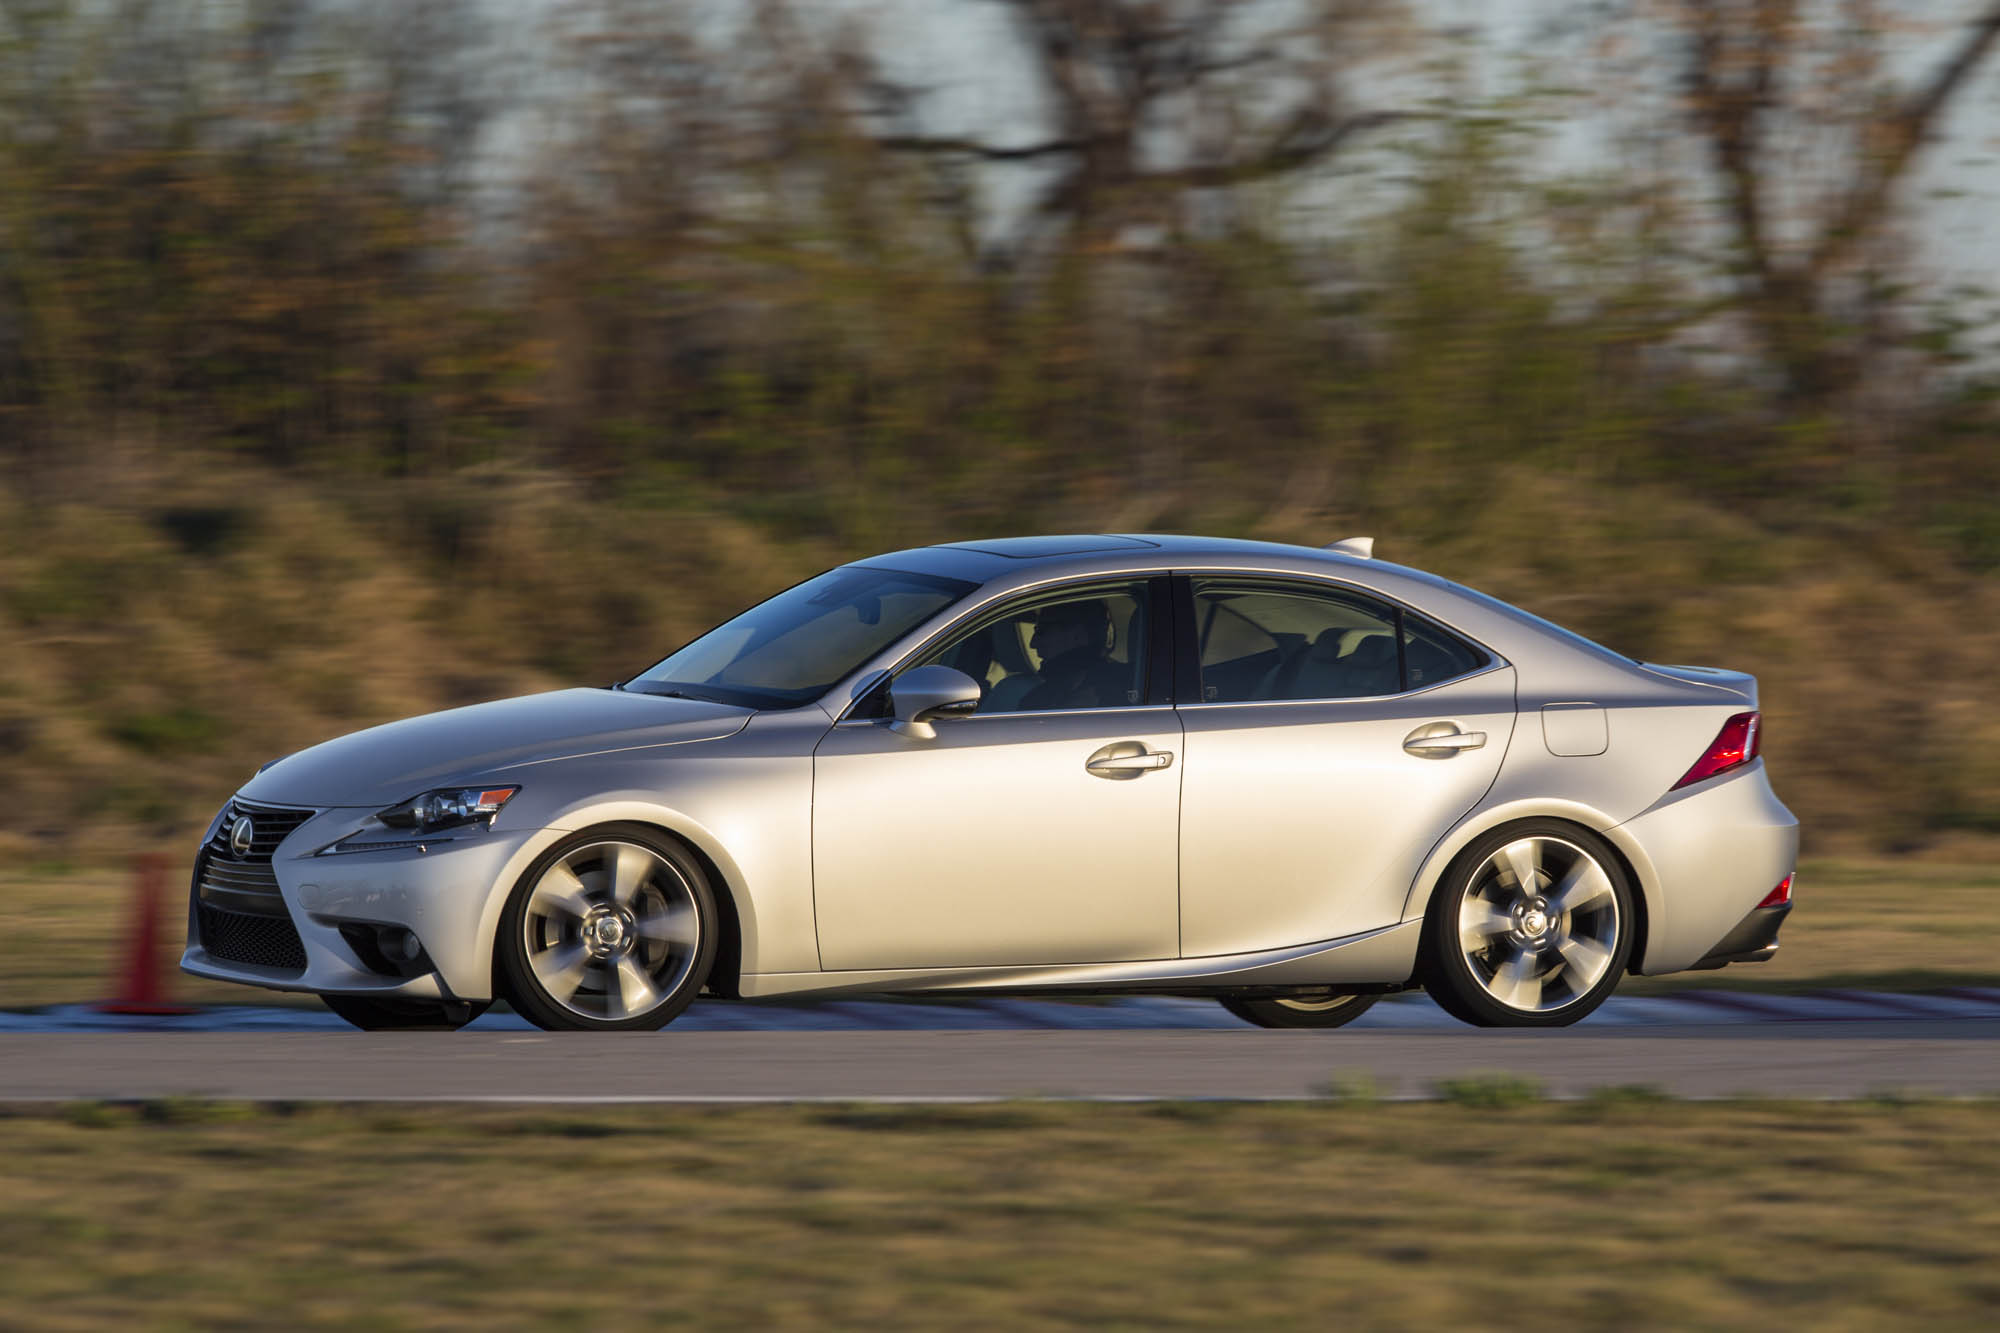 2014 Lexus IS Review Ratings Specs Prices and s The Car